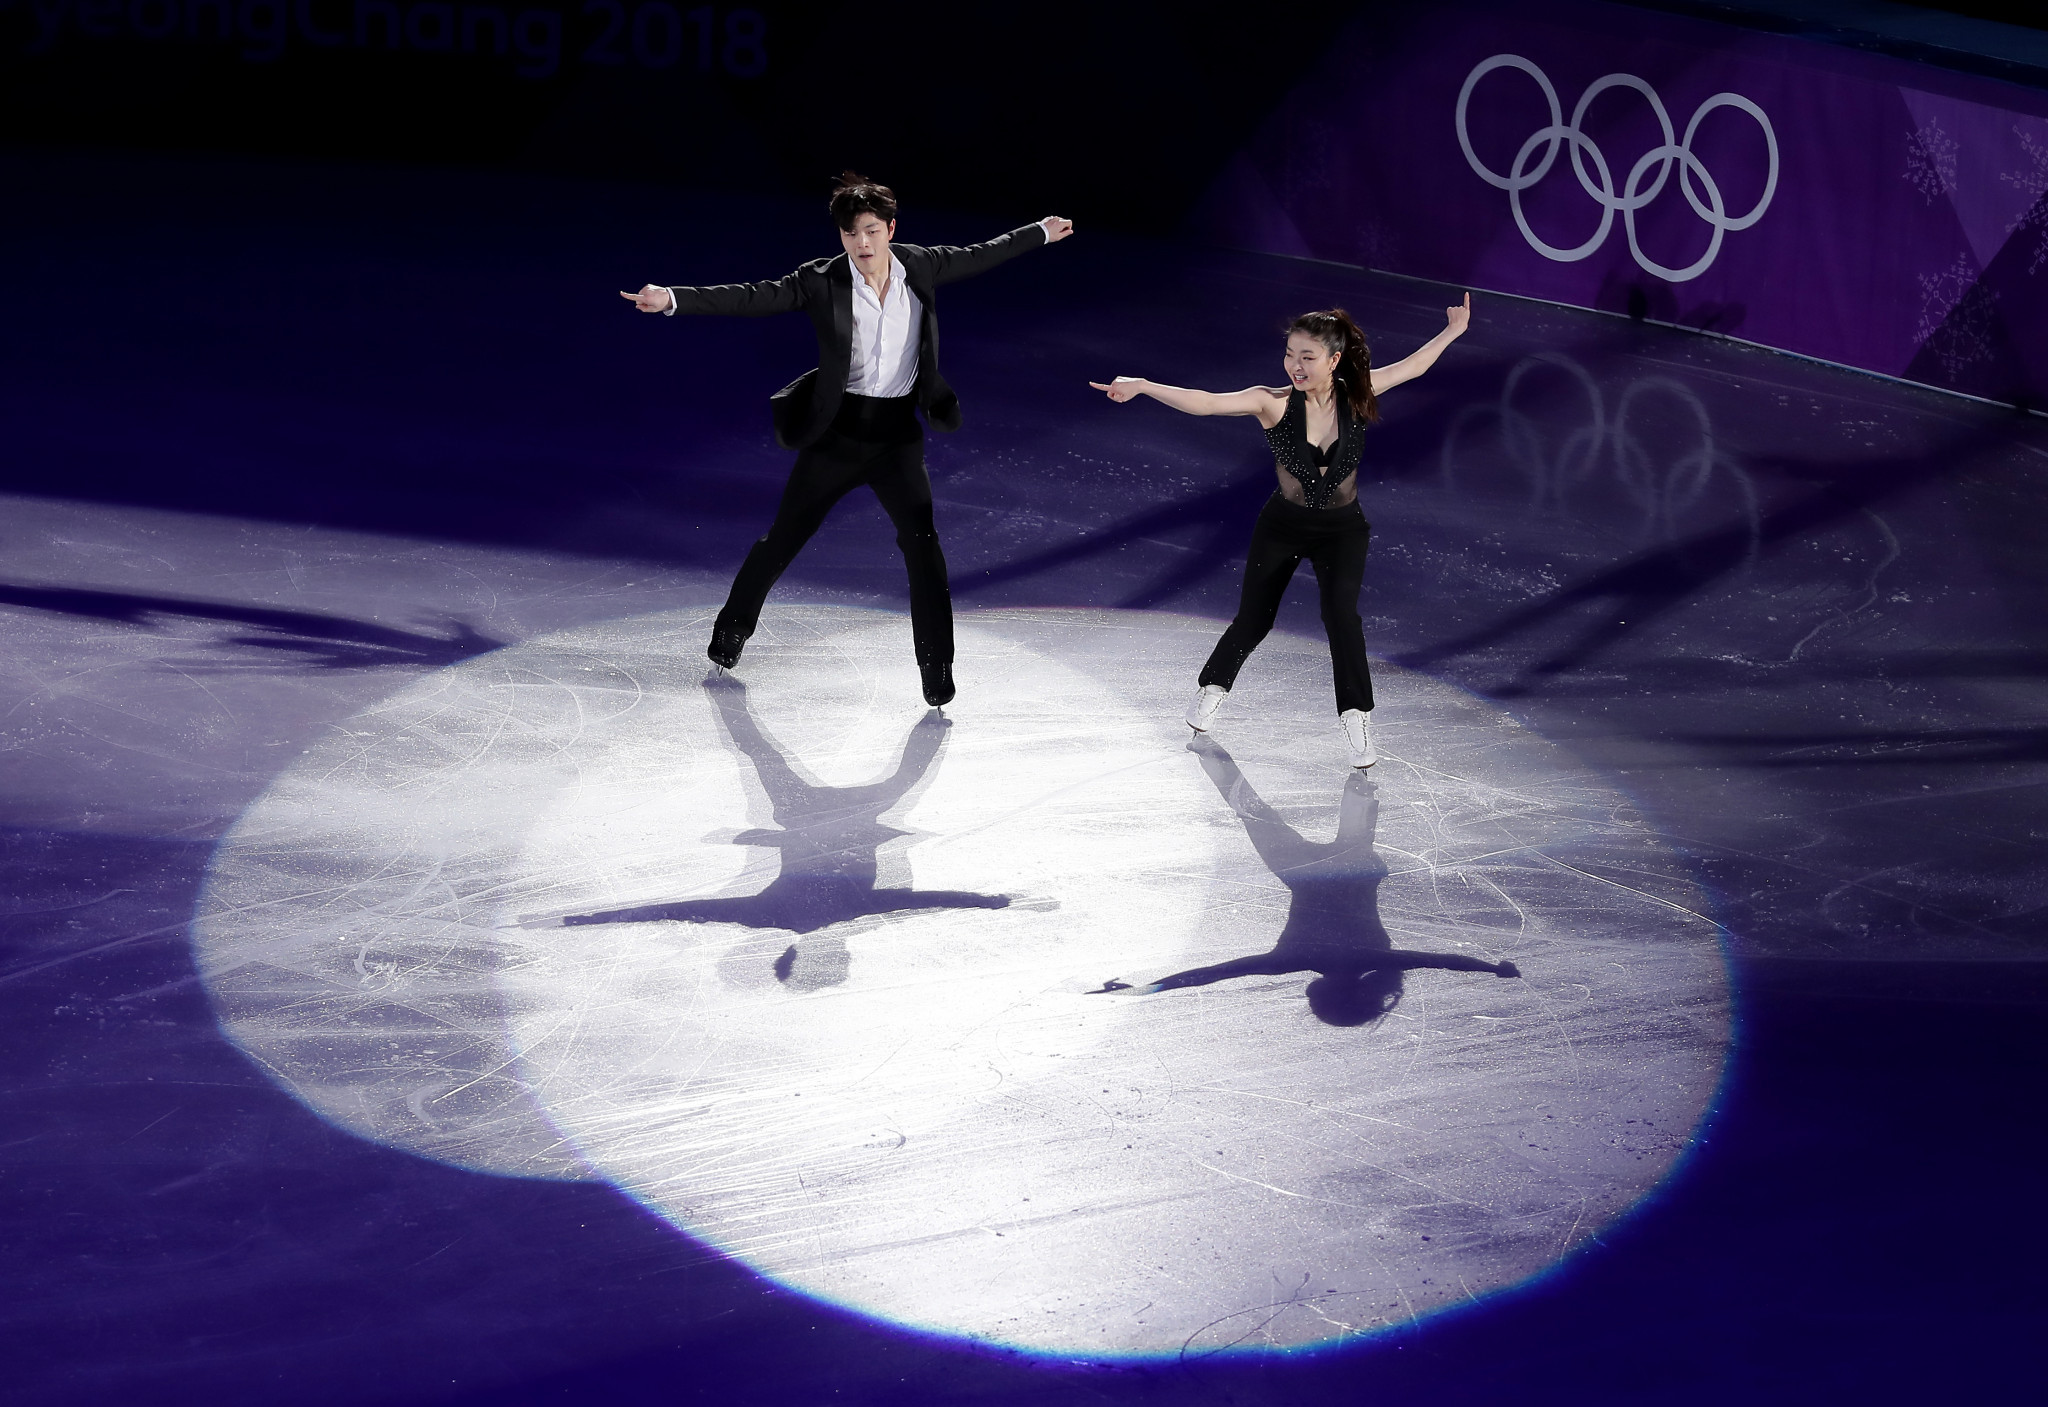 Alex and Maia Shibutani won two Olympic bronze medals at Pyeongchang 2018 ©Getty Images